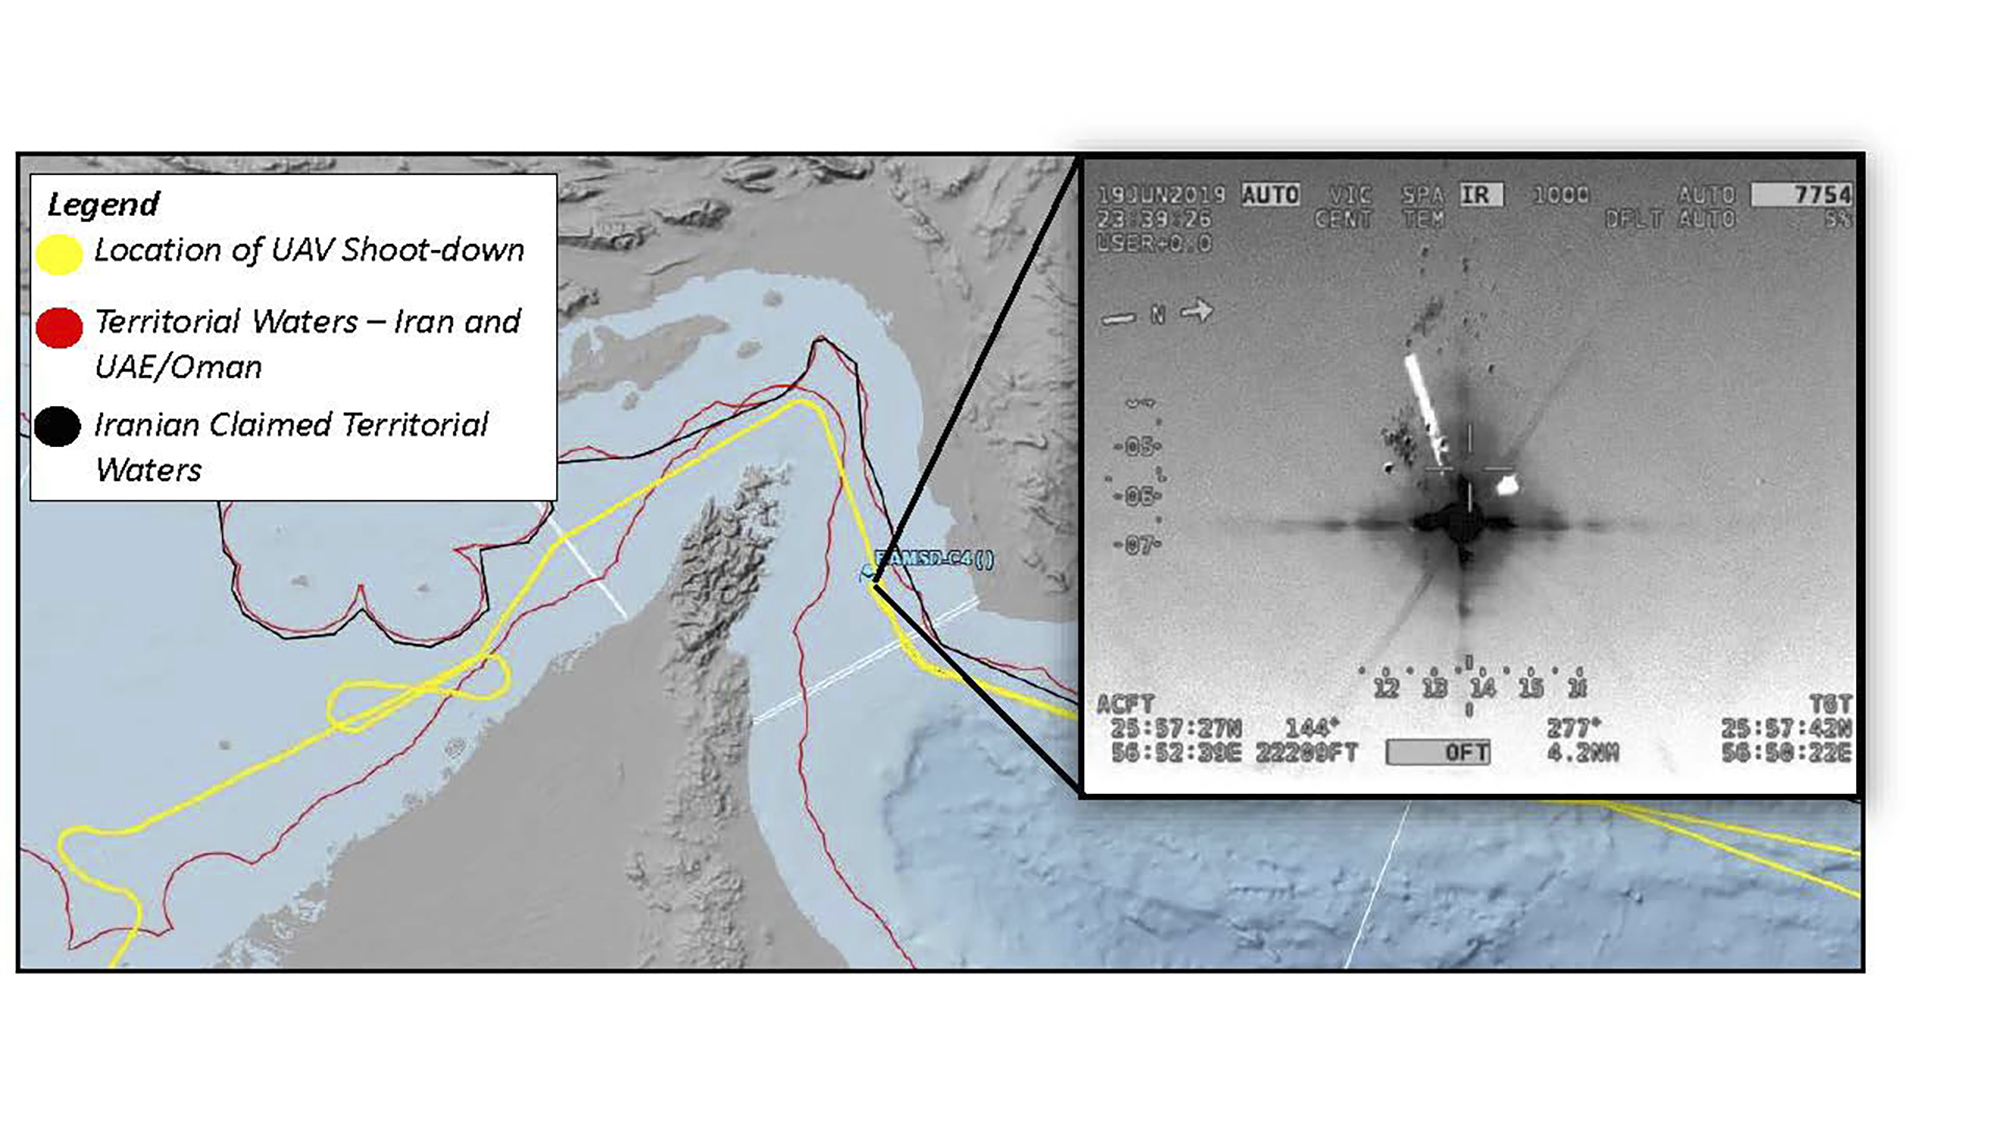 This image released by the US military's Central Command shows what it describes as the flight path and the site where Iran shot down a US droneNavy RQ-4A Global Hawk in the Strait of Hormuz on Thursday, June 20, 2019. Iran says it shot down the drone over Iranian territorial waters